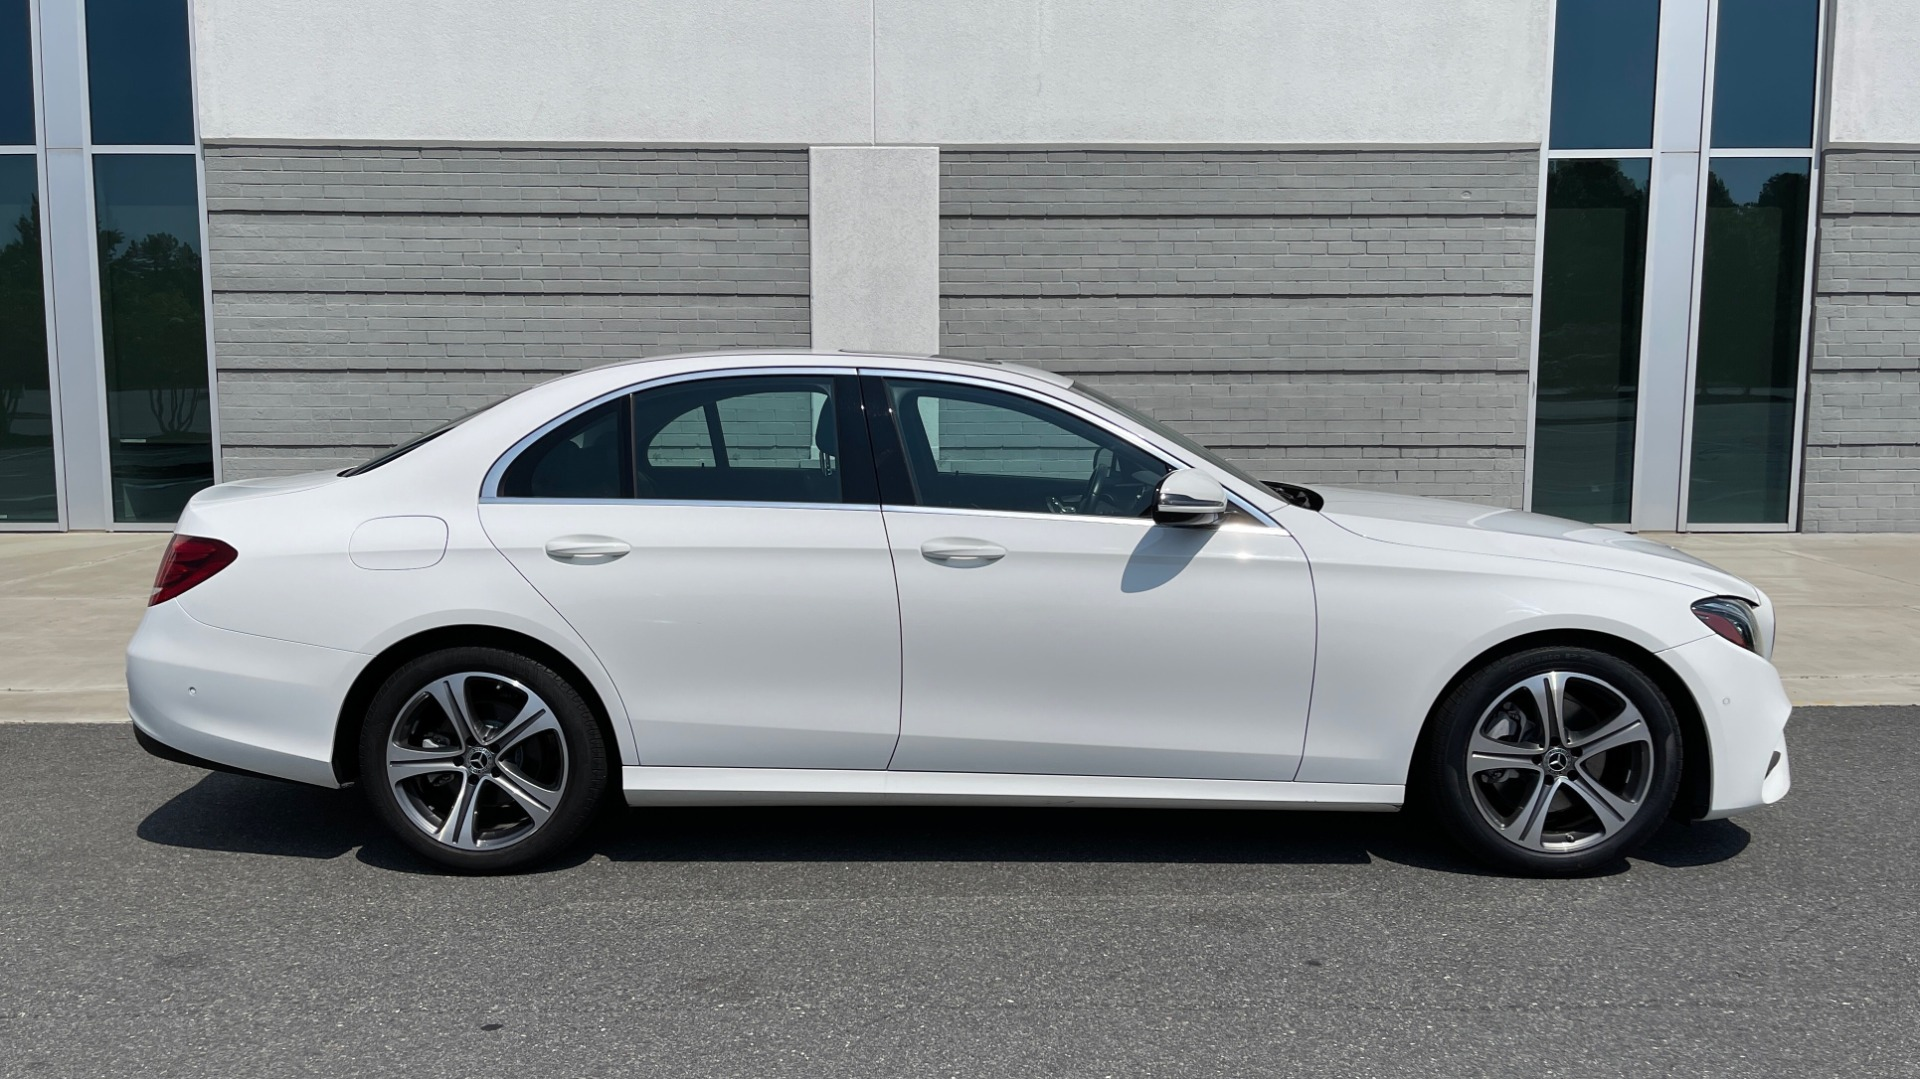 Used 2018 Mercedes-Benz E-CLASS E 300 / 2.0L I4 TURBO / NAV / BSA / SUNROOF / REARVIEW for sale Sold at Formula Imports in Charlotte NC 28227 8